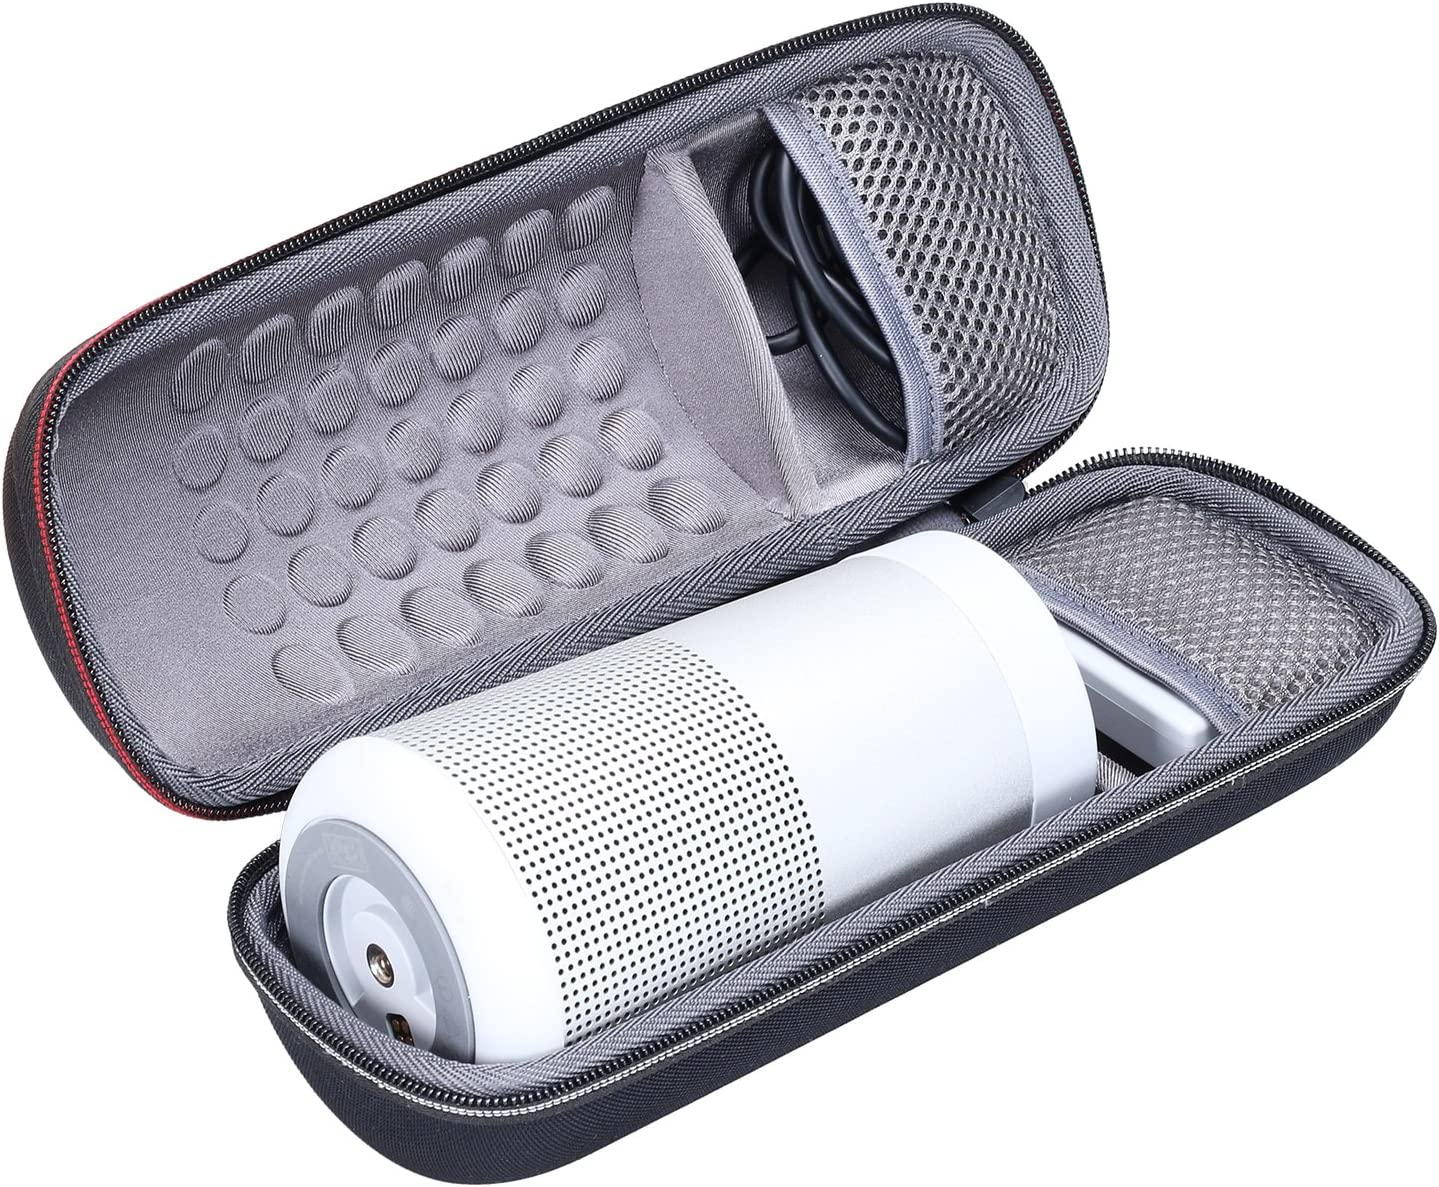 Storage Protective Bag Grey Portable /& Long-Lasting Bluetooth 360 Speaker XANAD Hard Travel Carrying Case for Bose SoundLink Revolve